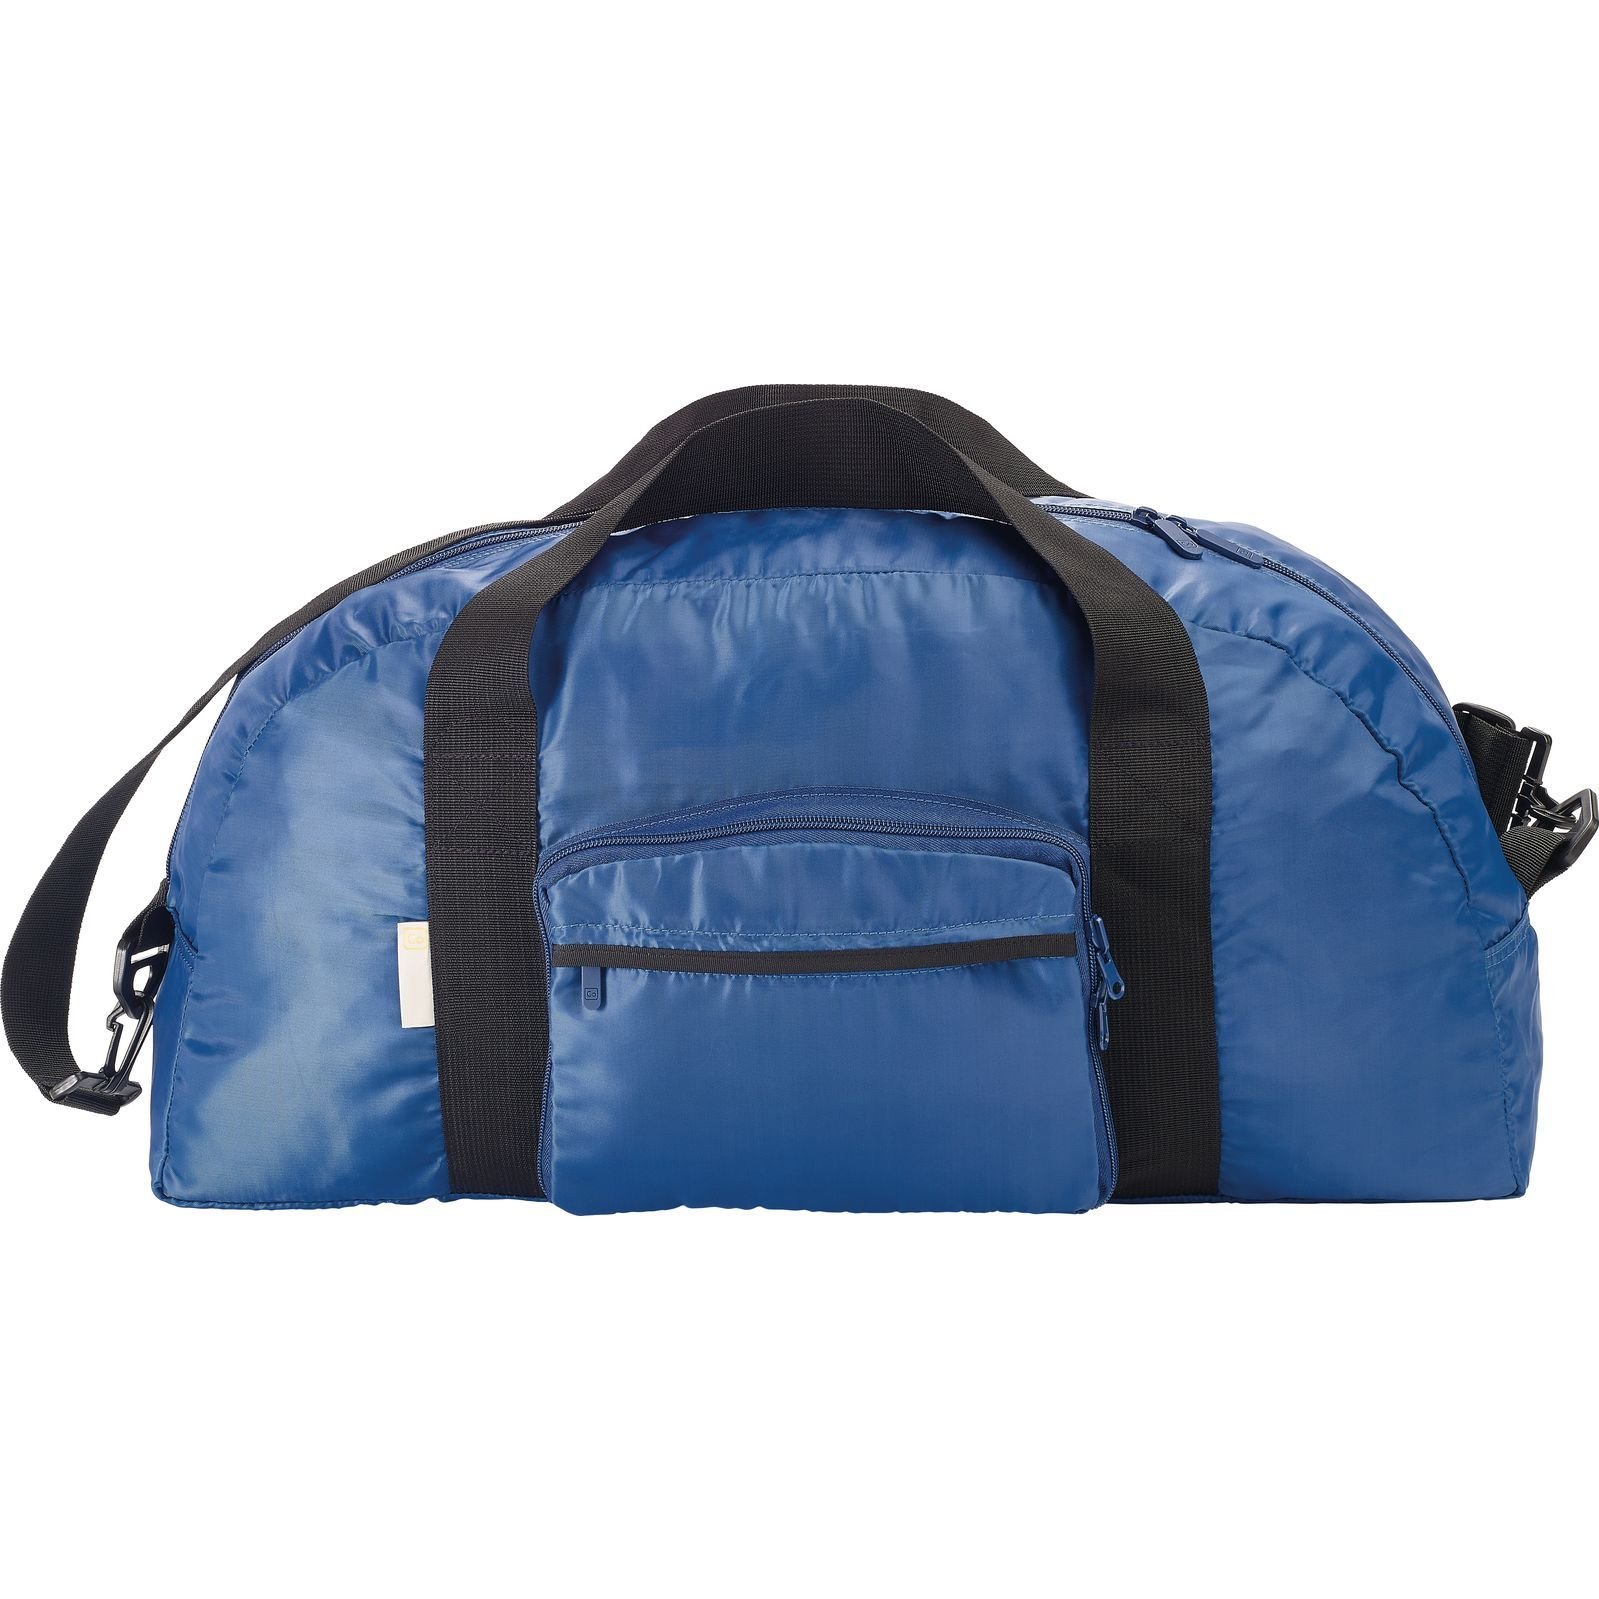 Go Travel Lightweight Strong /& Durable Cabin Approved Foldaway Bag Ref - 510 Blue